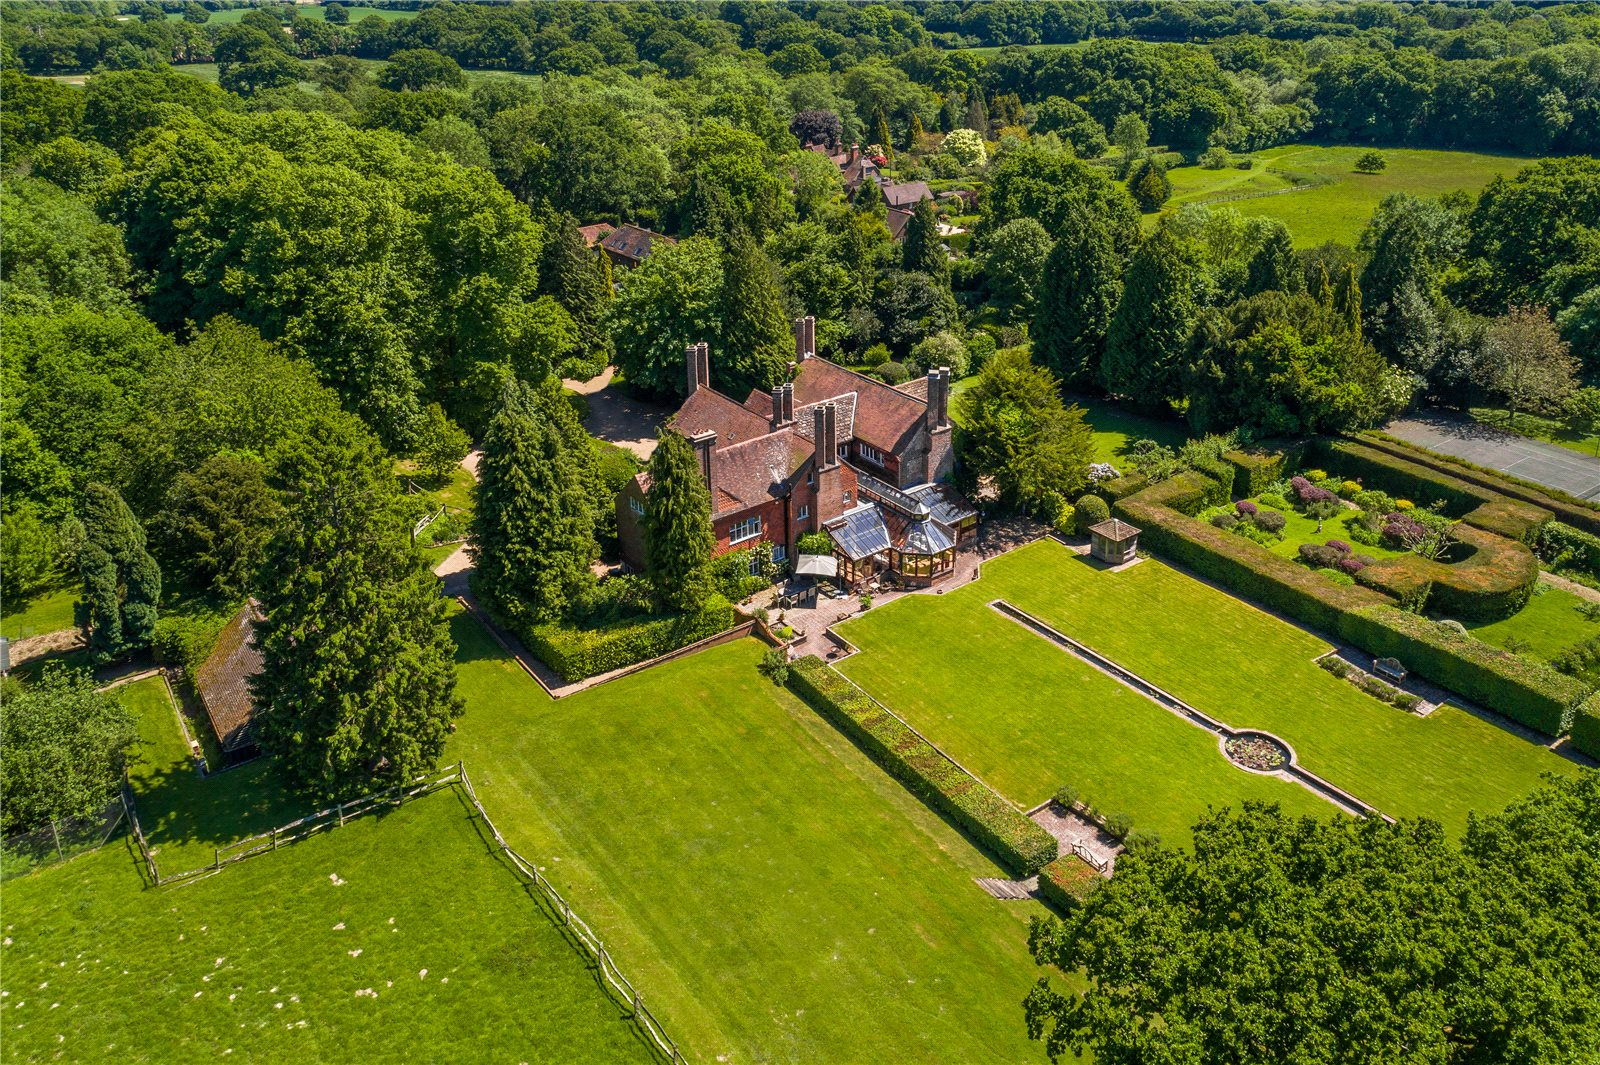 Villa per Vendita alle ore Cuckfield Road, Ansty, Haywards Heath, West Sussex, RH17 Haywards Heath, Inghilterra